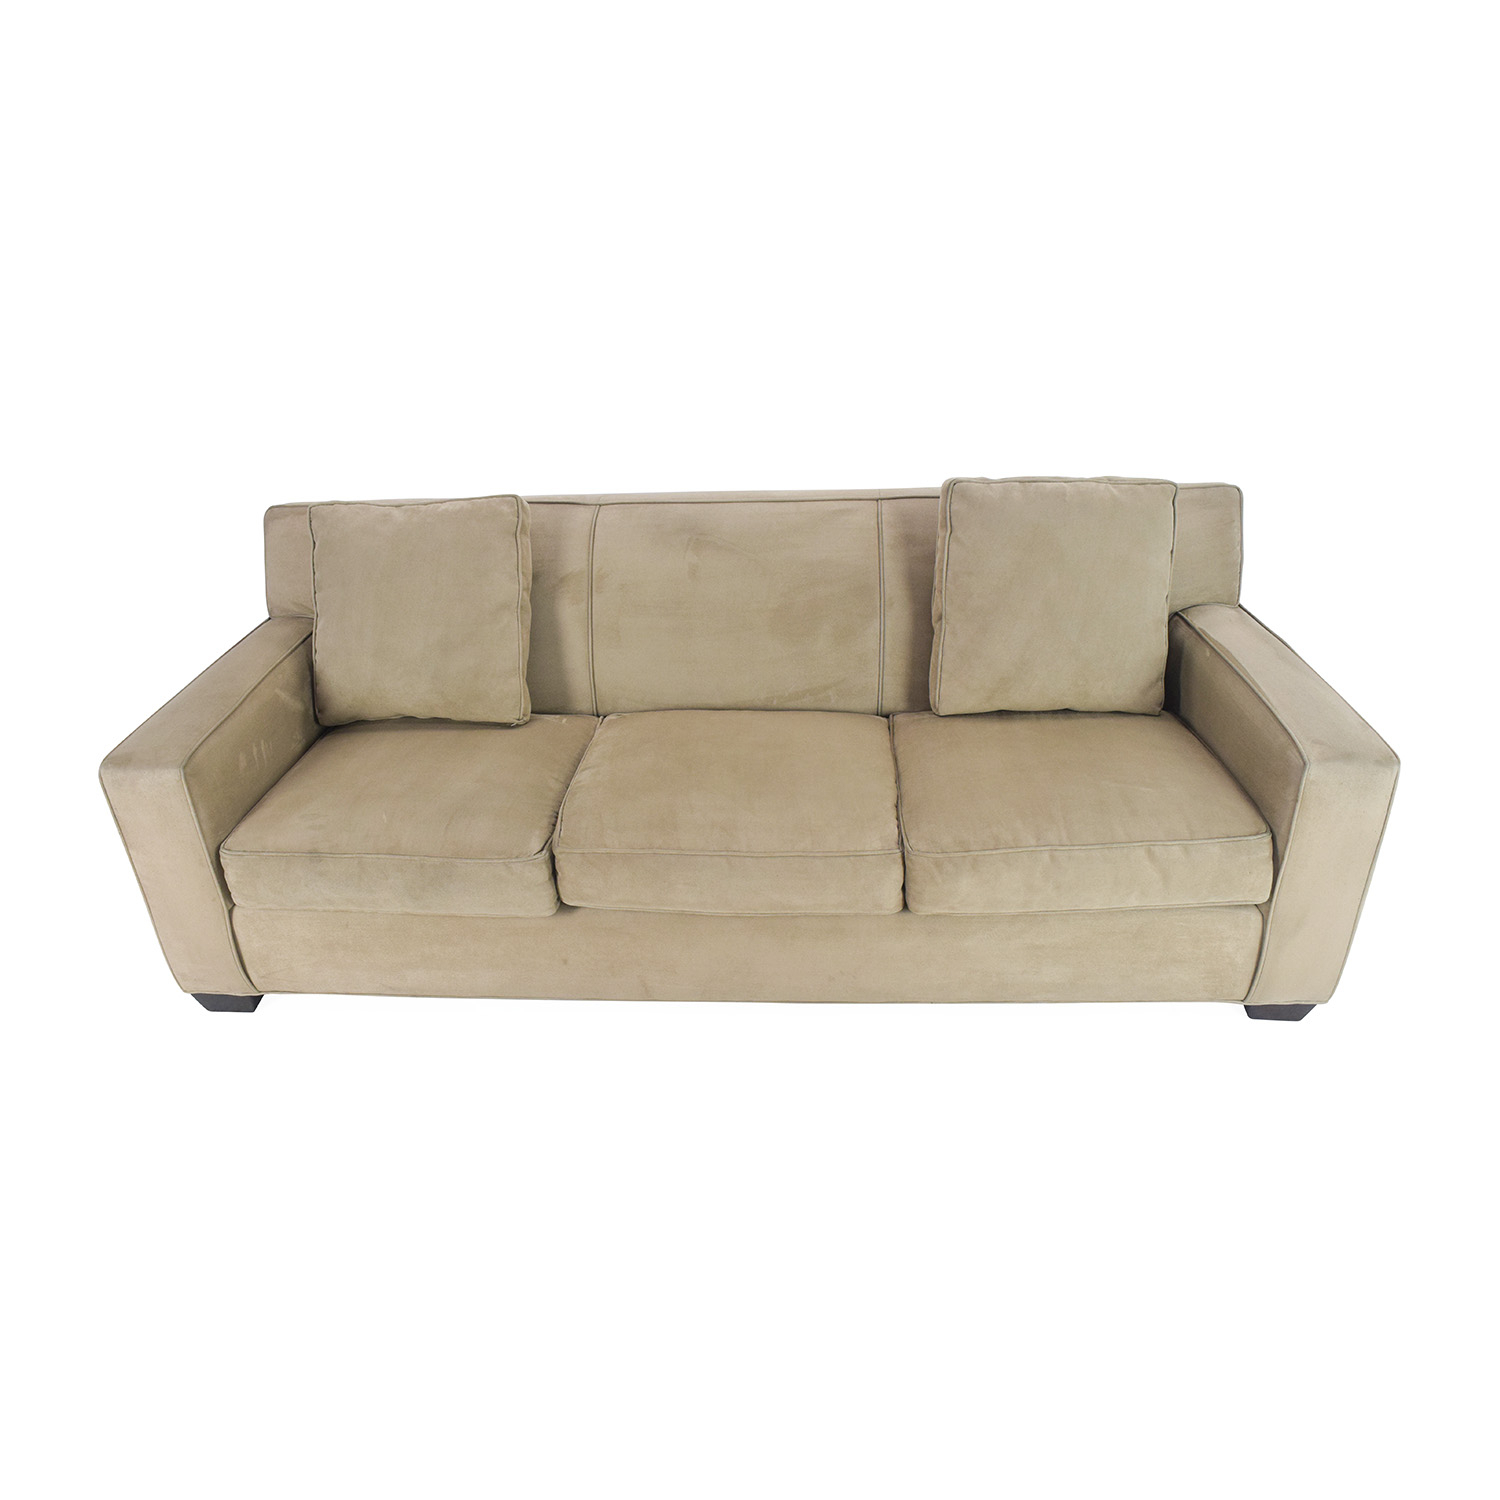 78% Off – Crate And Barrel Crate And Barrel Cameron Sofa / Sofas Within Cameron Sofa Chairs (Image 2 of 25)